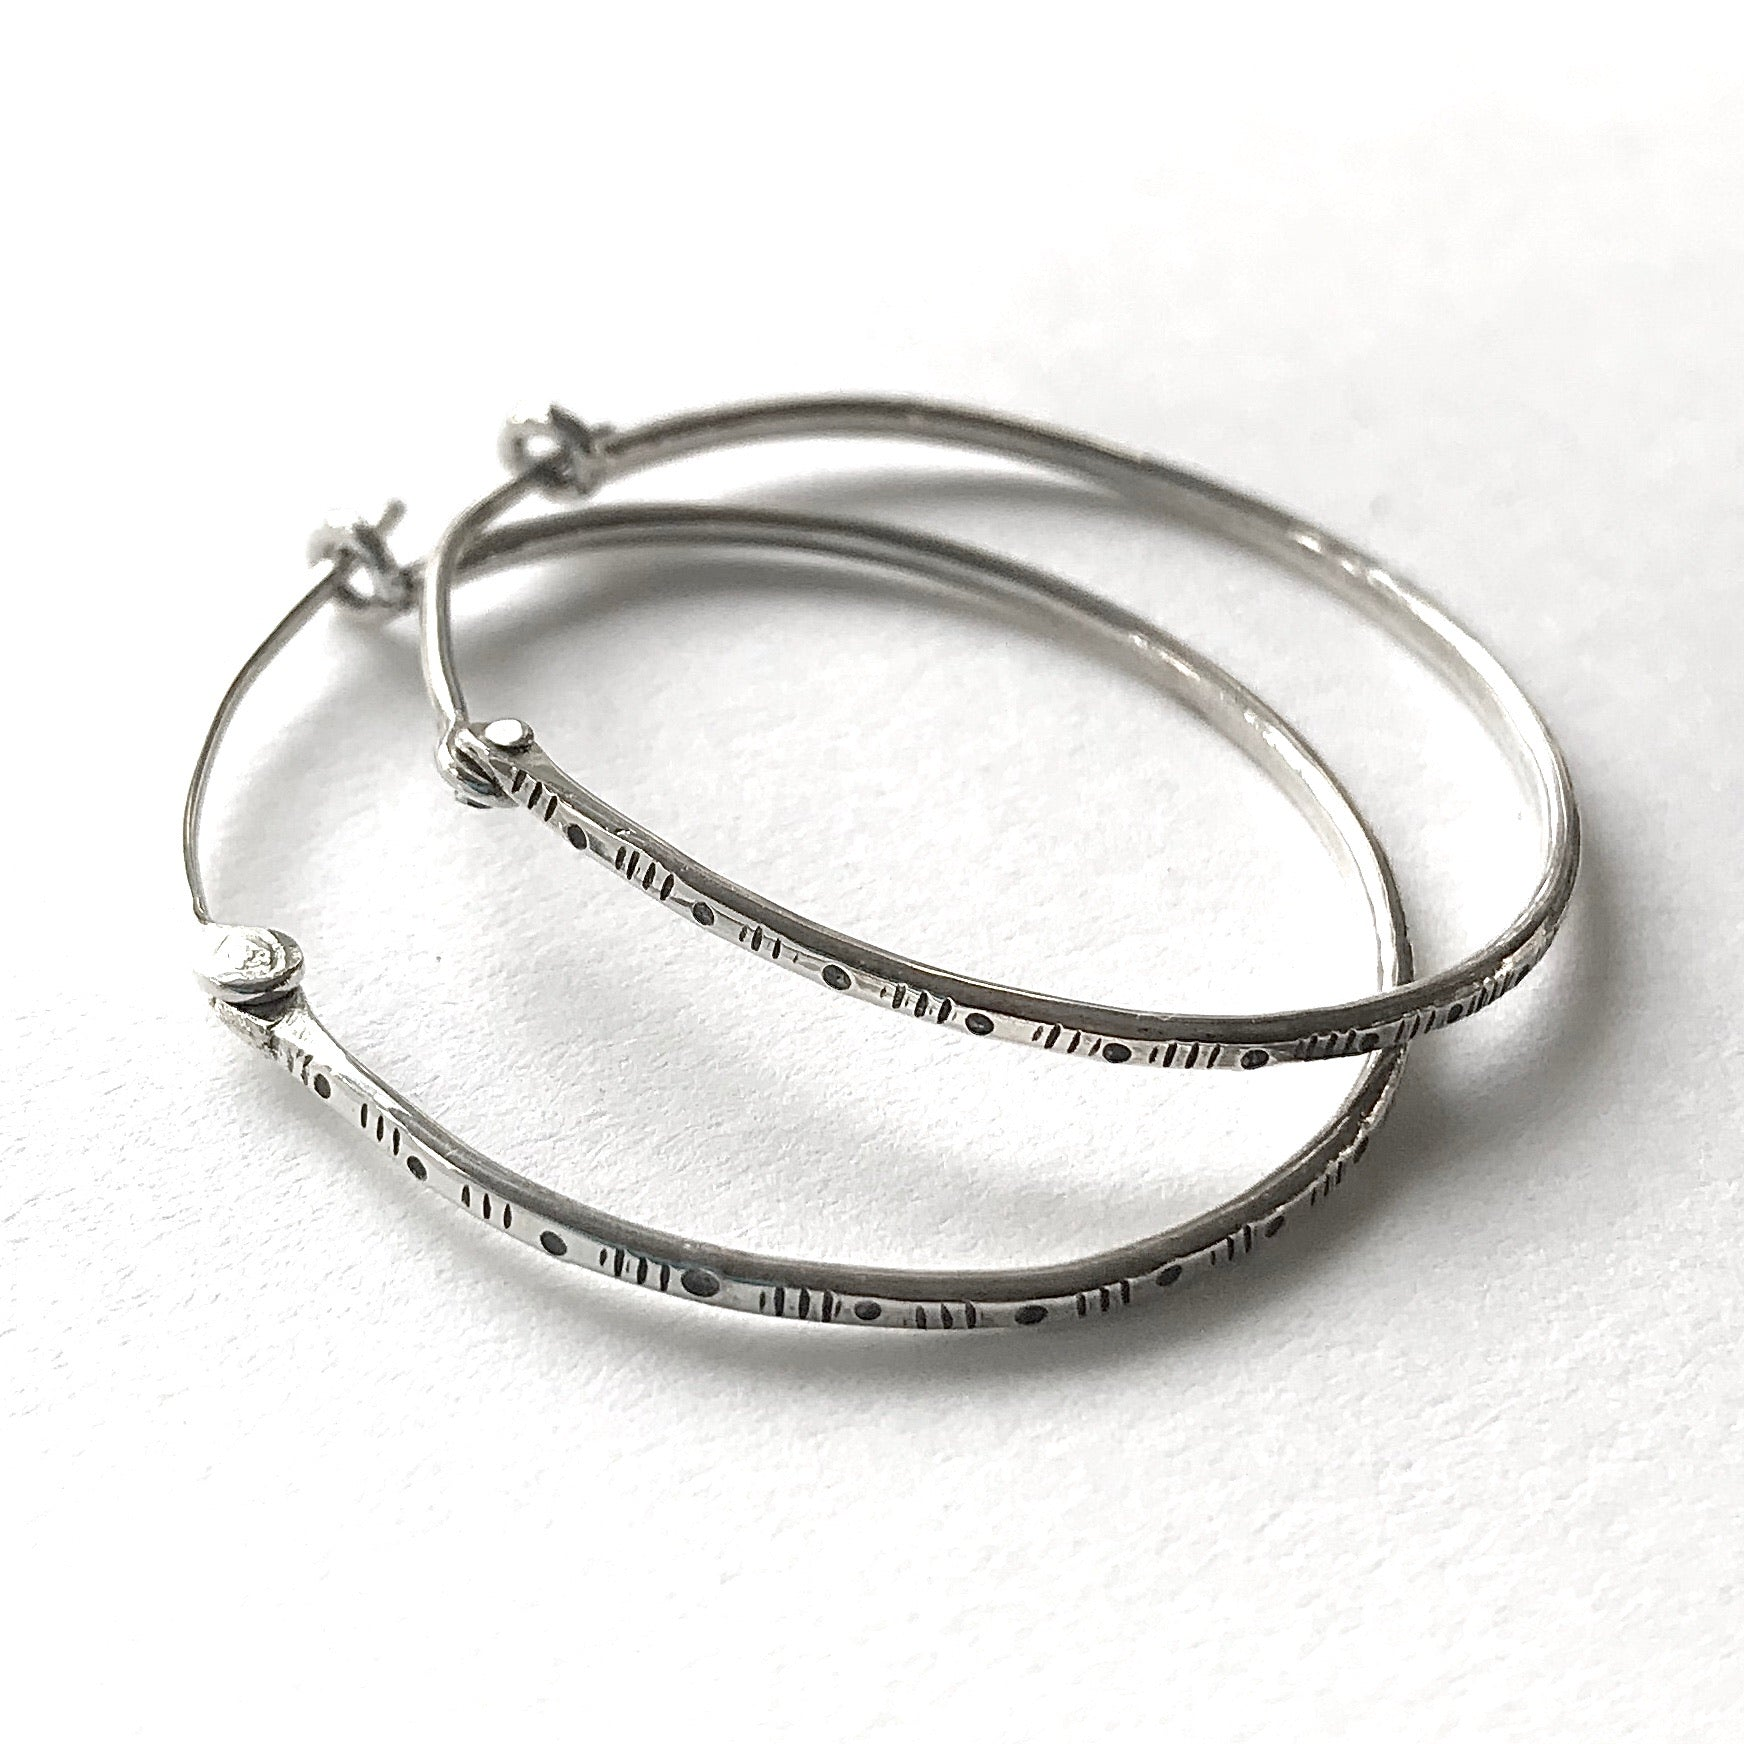 Dots & Dashes hoop earrings